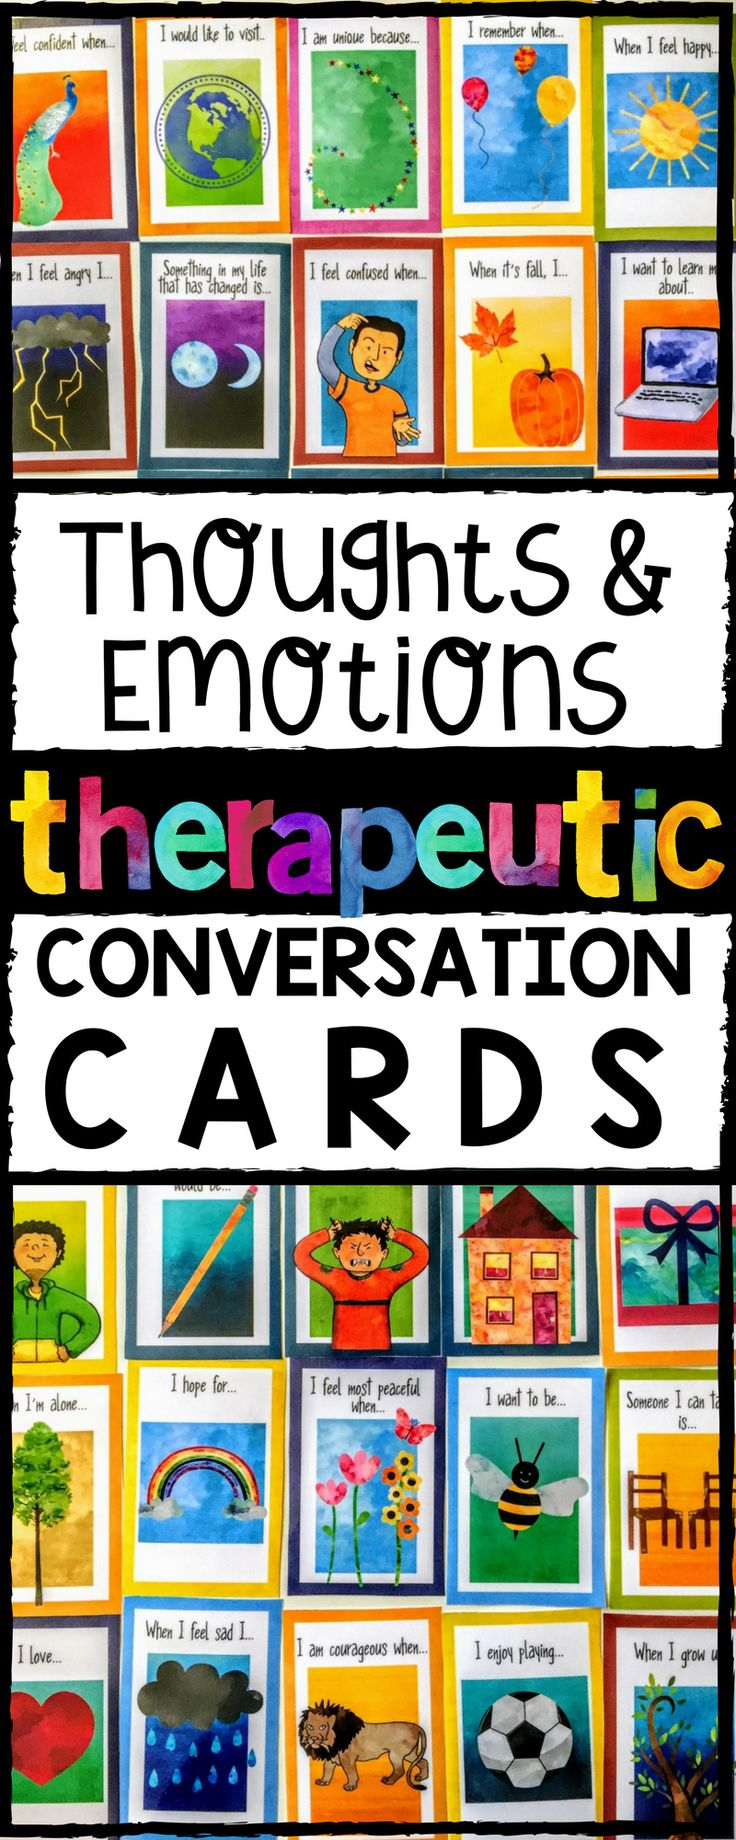 Thoughts and Emotions Therapeutic conversation cards.  Open-ended prompts that build rapport and connection. Great counseling assessment tool for children and teens.